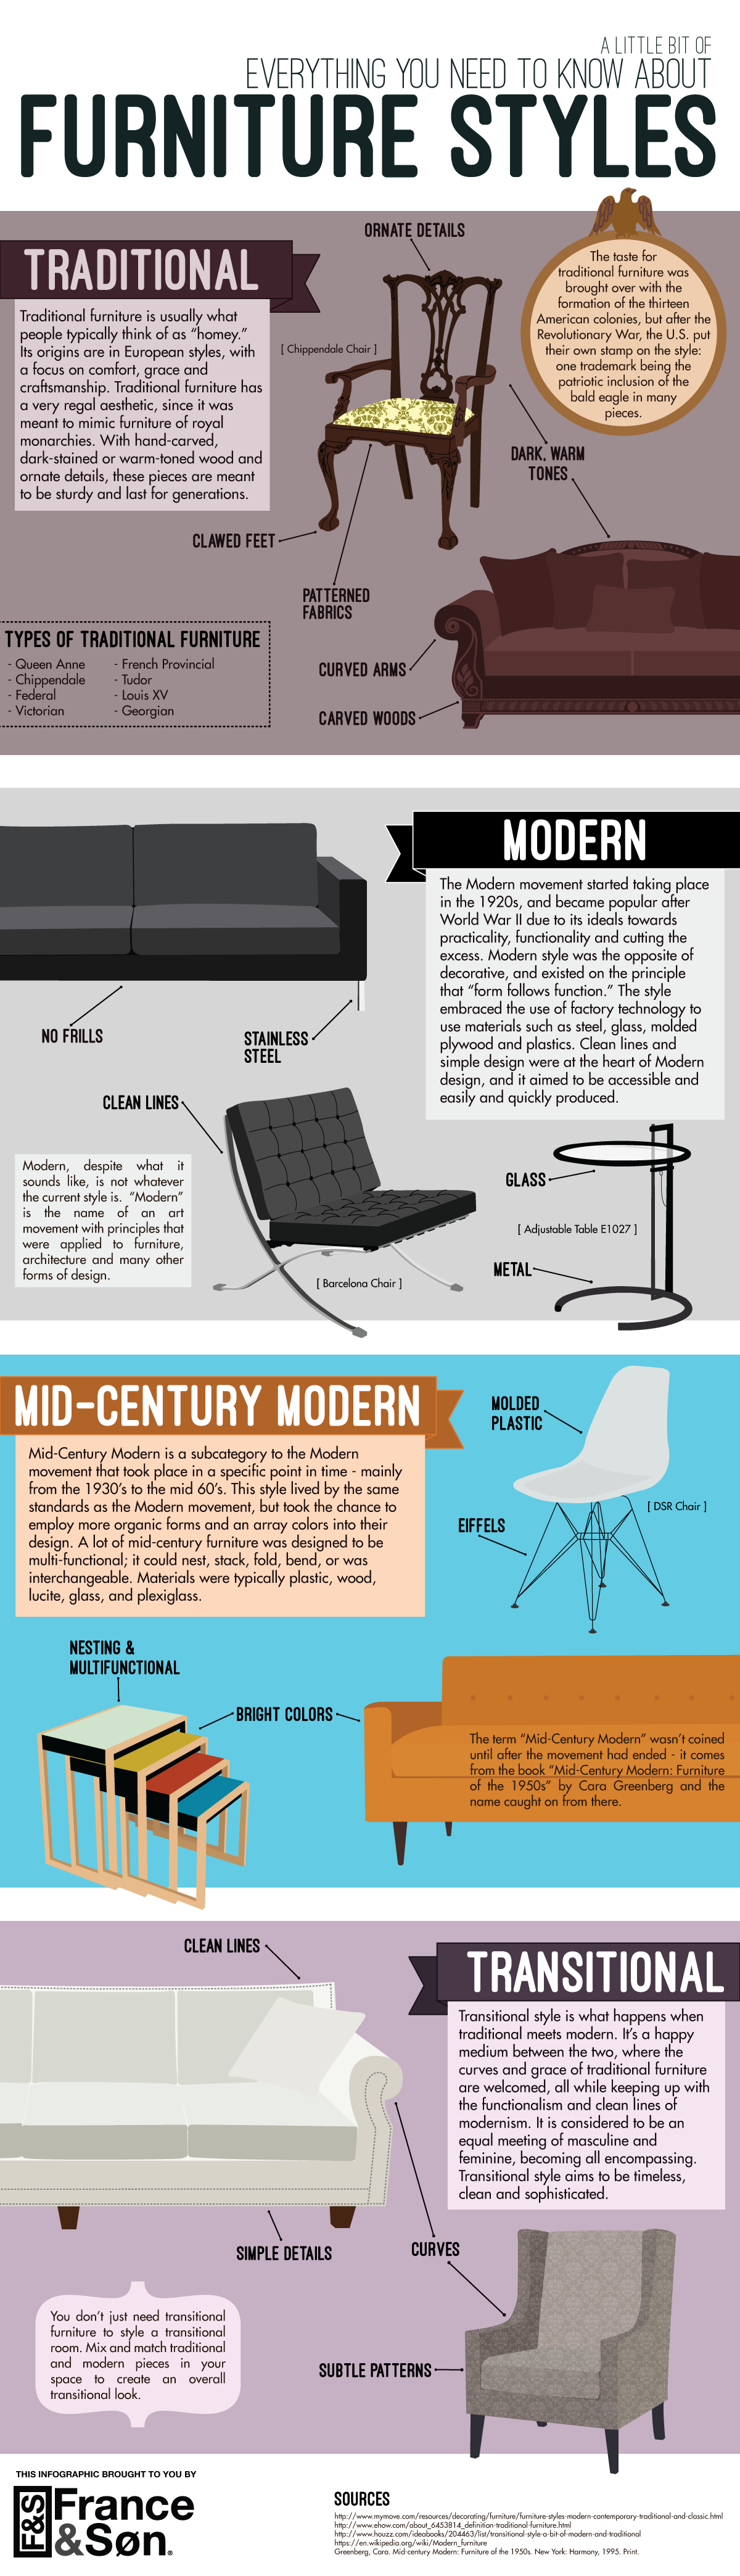 Everything You Need To Know About Interior Design infographic - (a little bit of) everything you need to know about